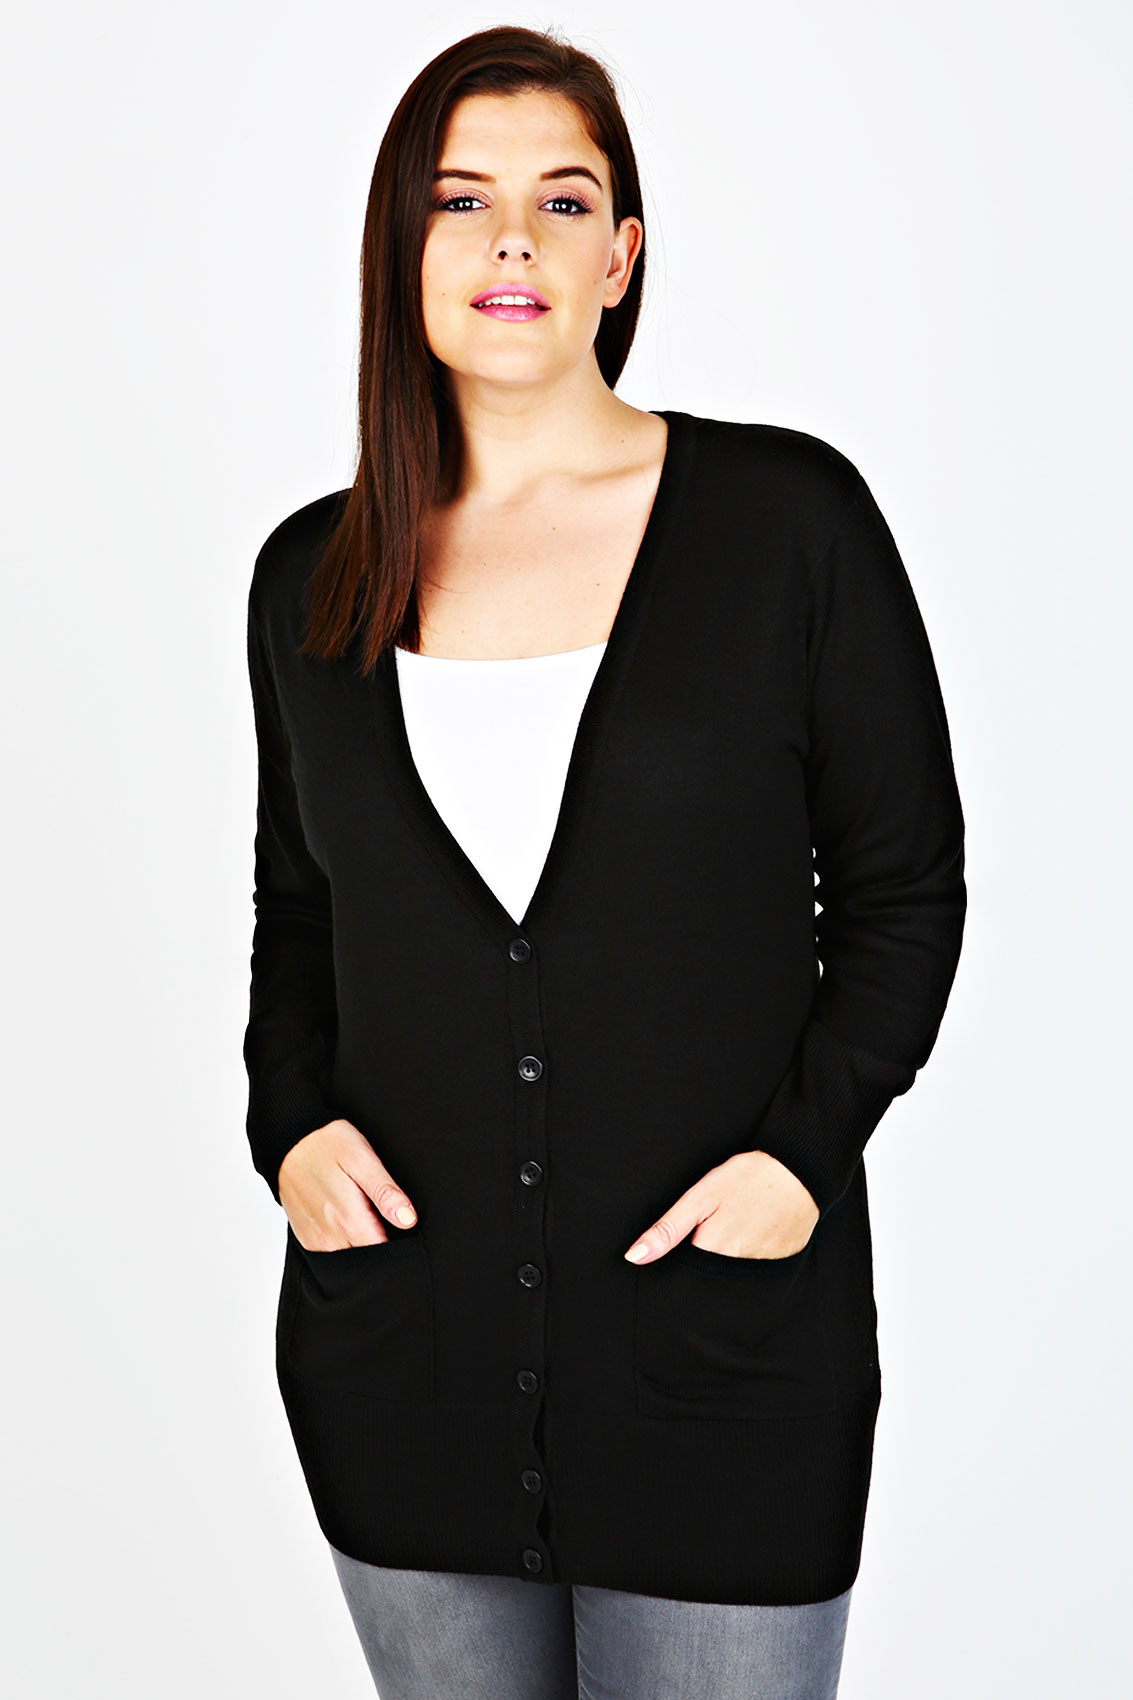 The standard boyfriend cardigan has been reimagined with a sexy twist. This black soft knit cardigan has sexy lace-up detail along the sleeves for a mock cold shoulder look.